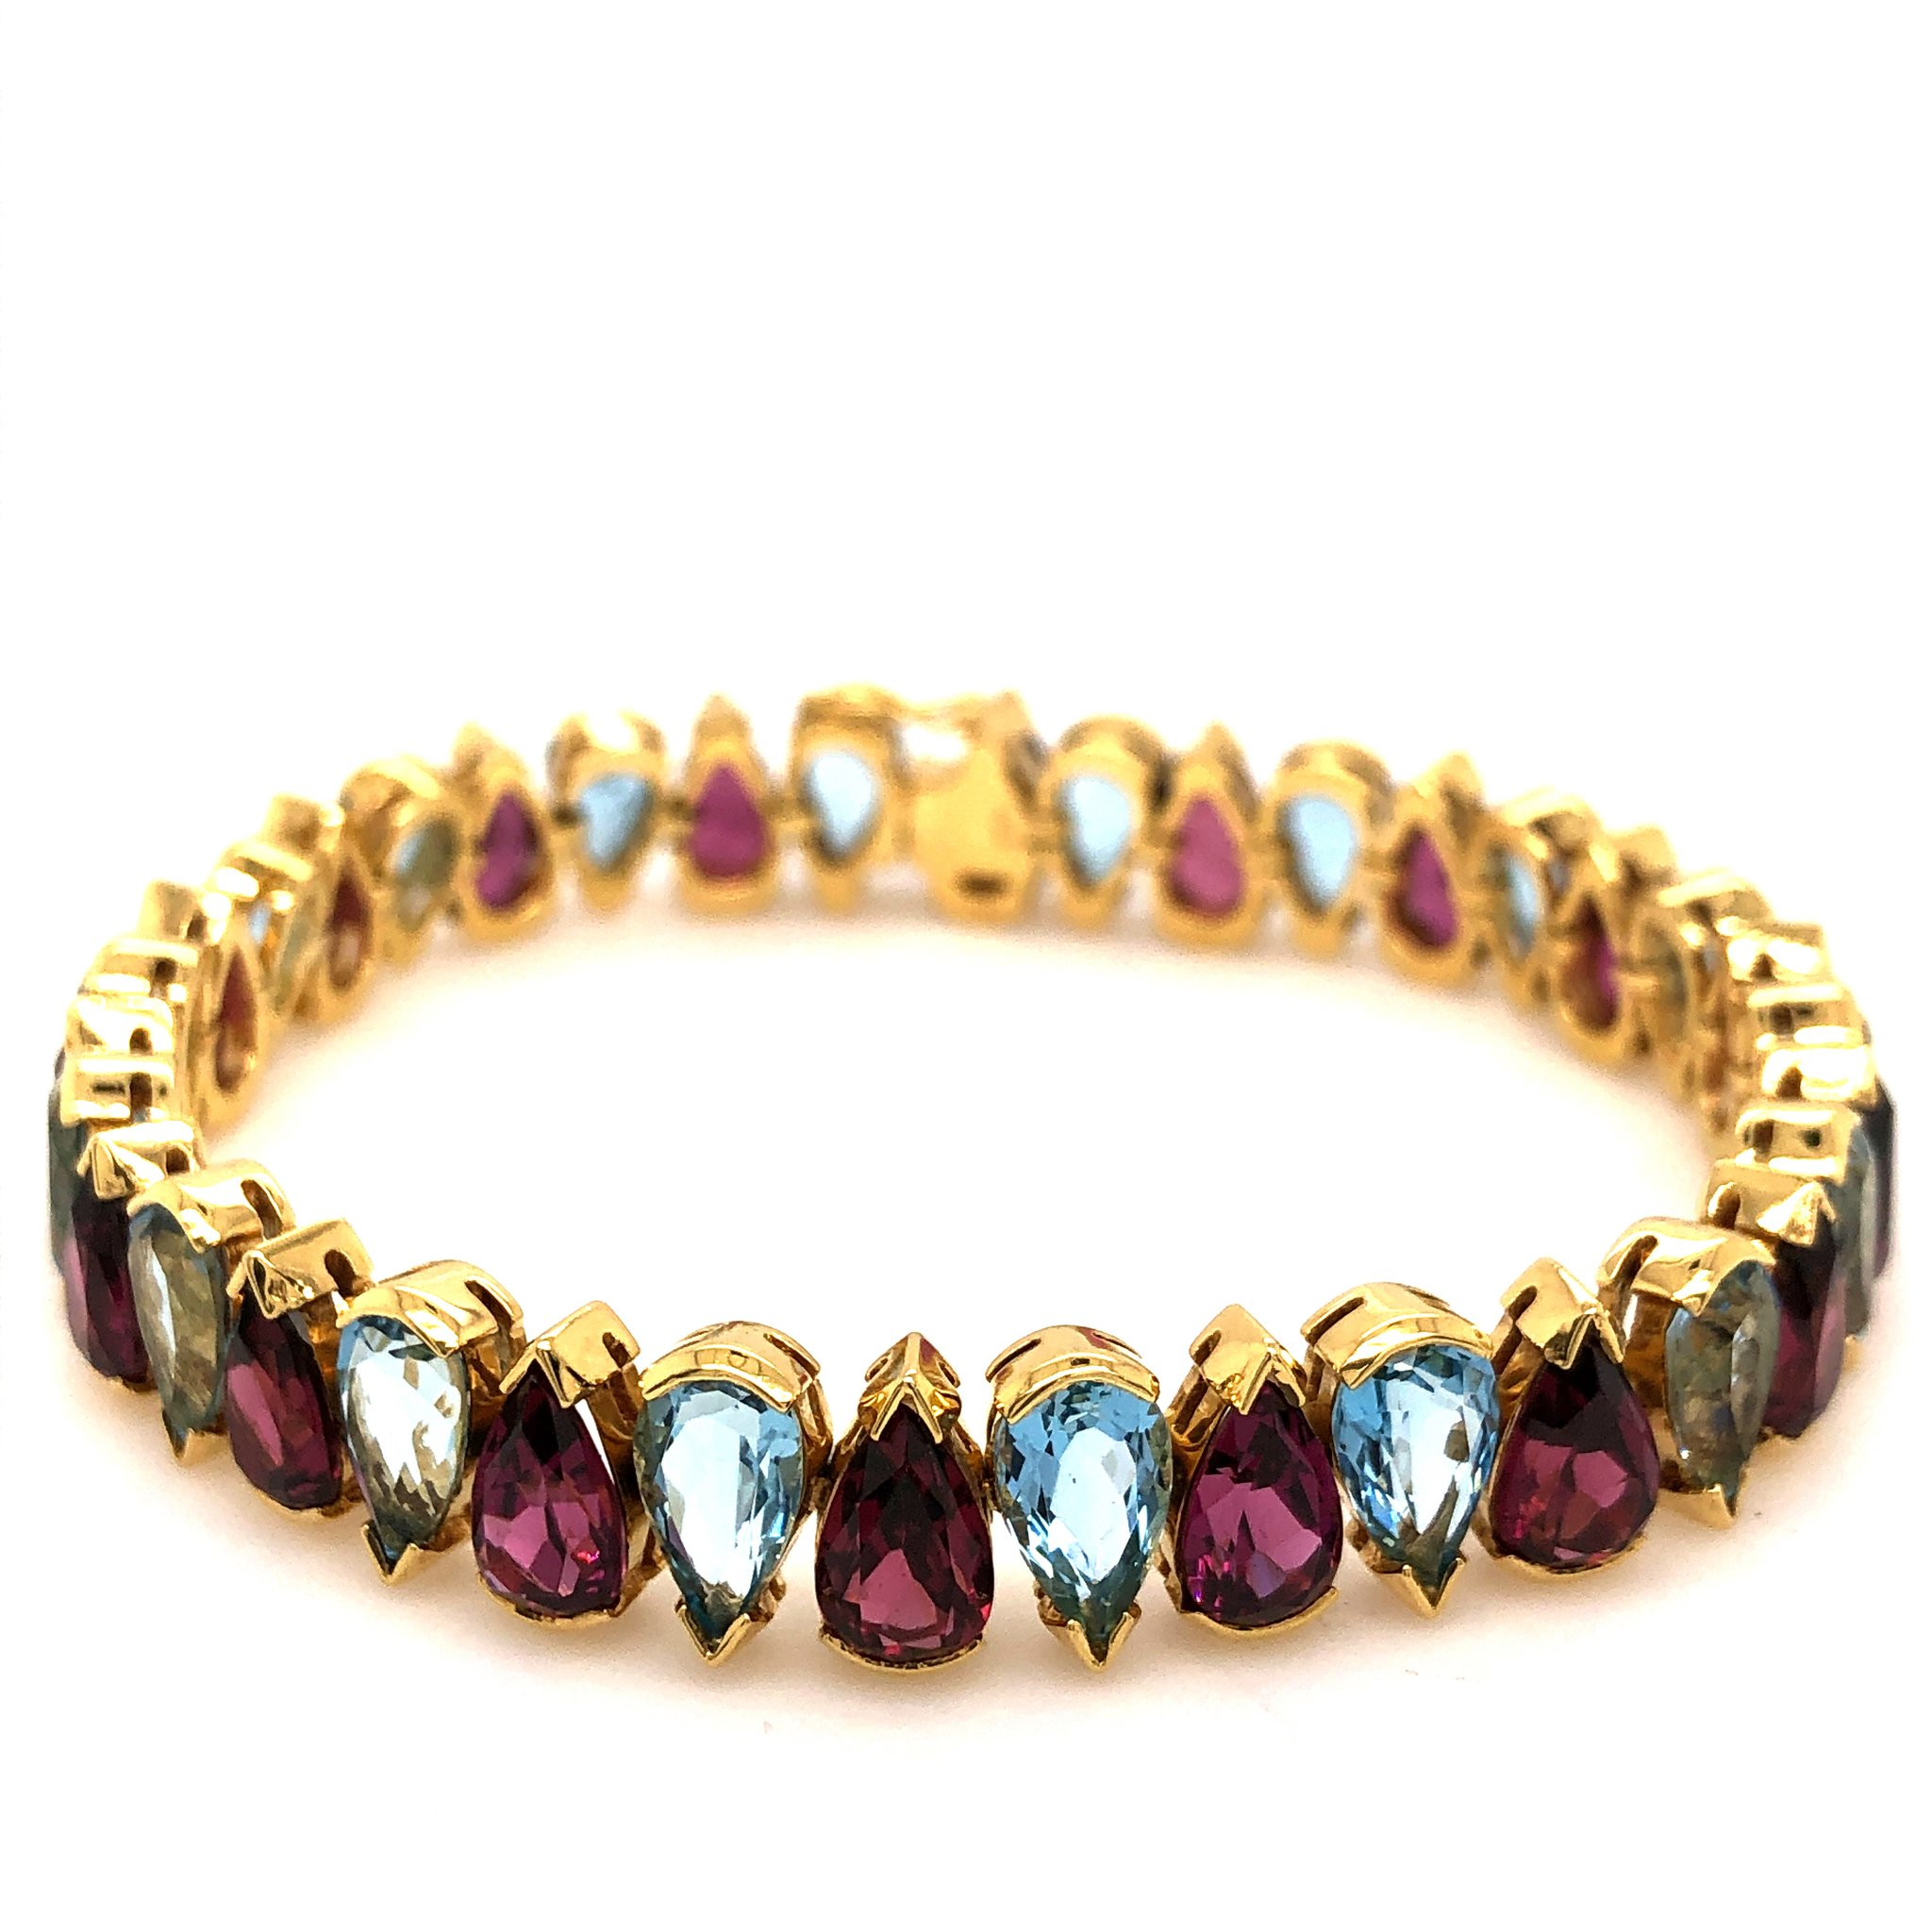 Vintage Aqua & Garnet Tennis Bracelet,18K Yellow Gold 36 Pear Shaped Gemstones